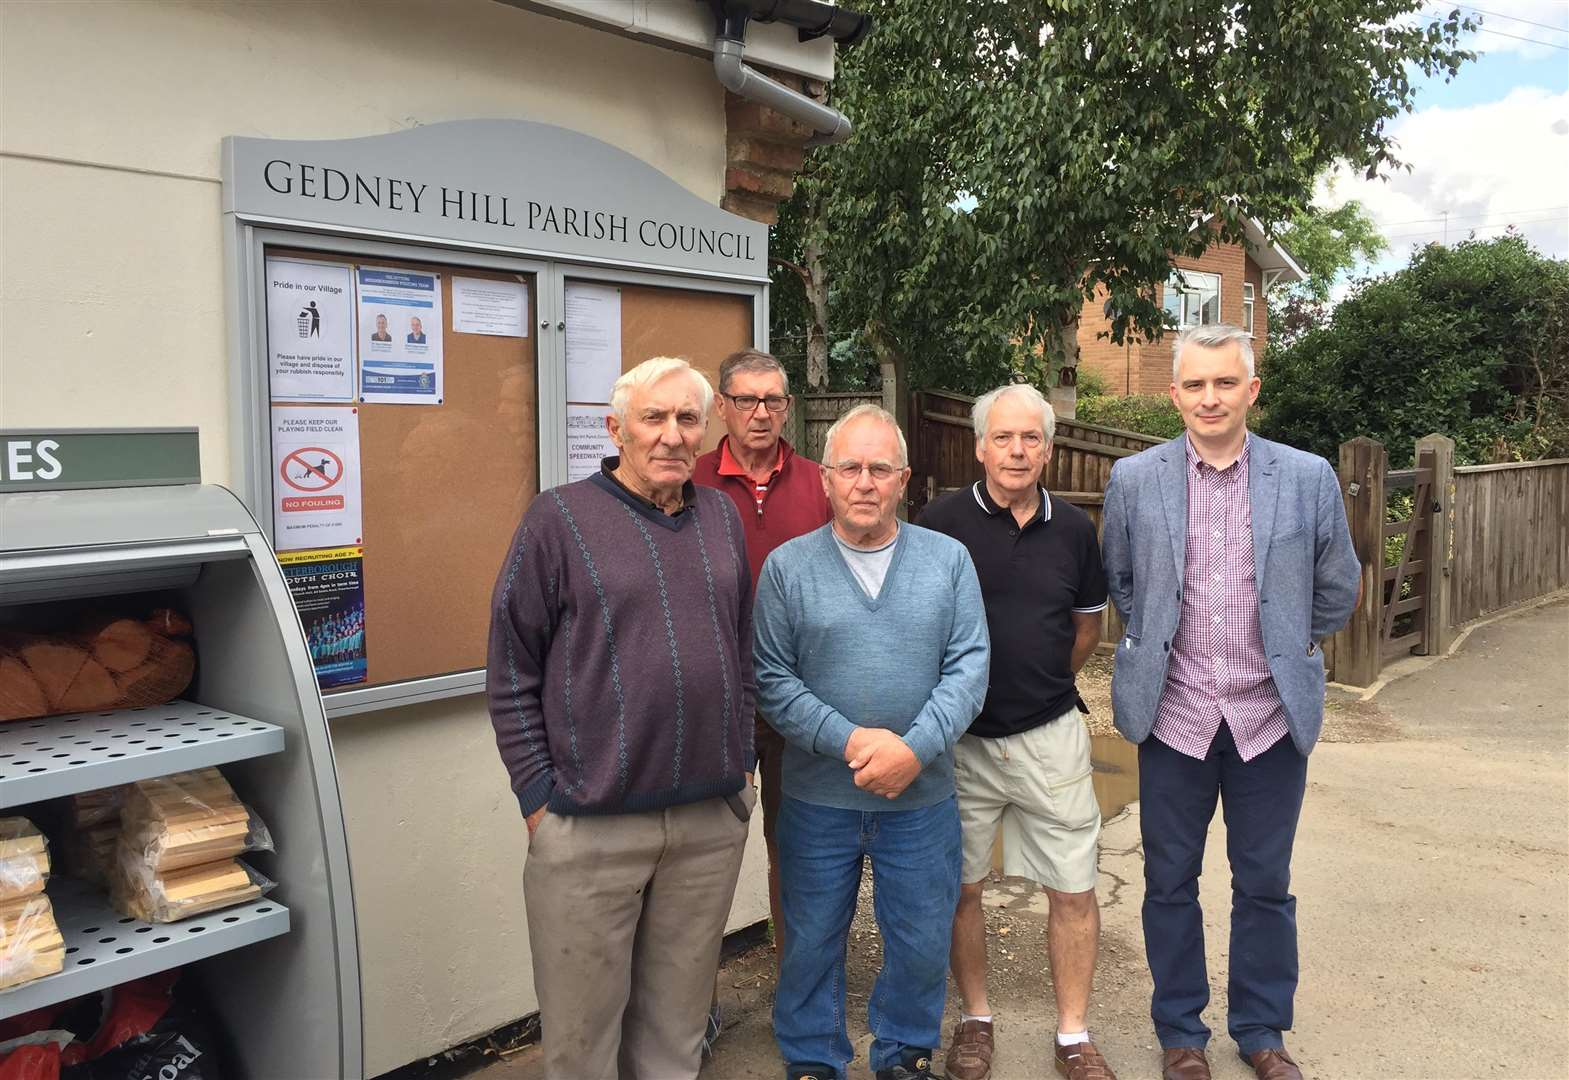 Retailer pledges to work with Gedney Hill villagers on deliveries